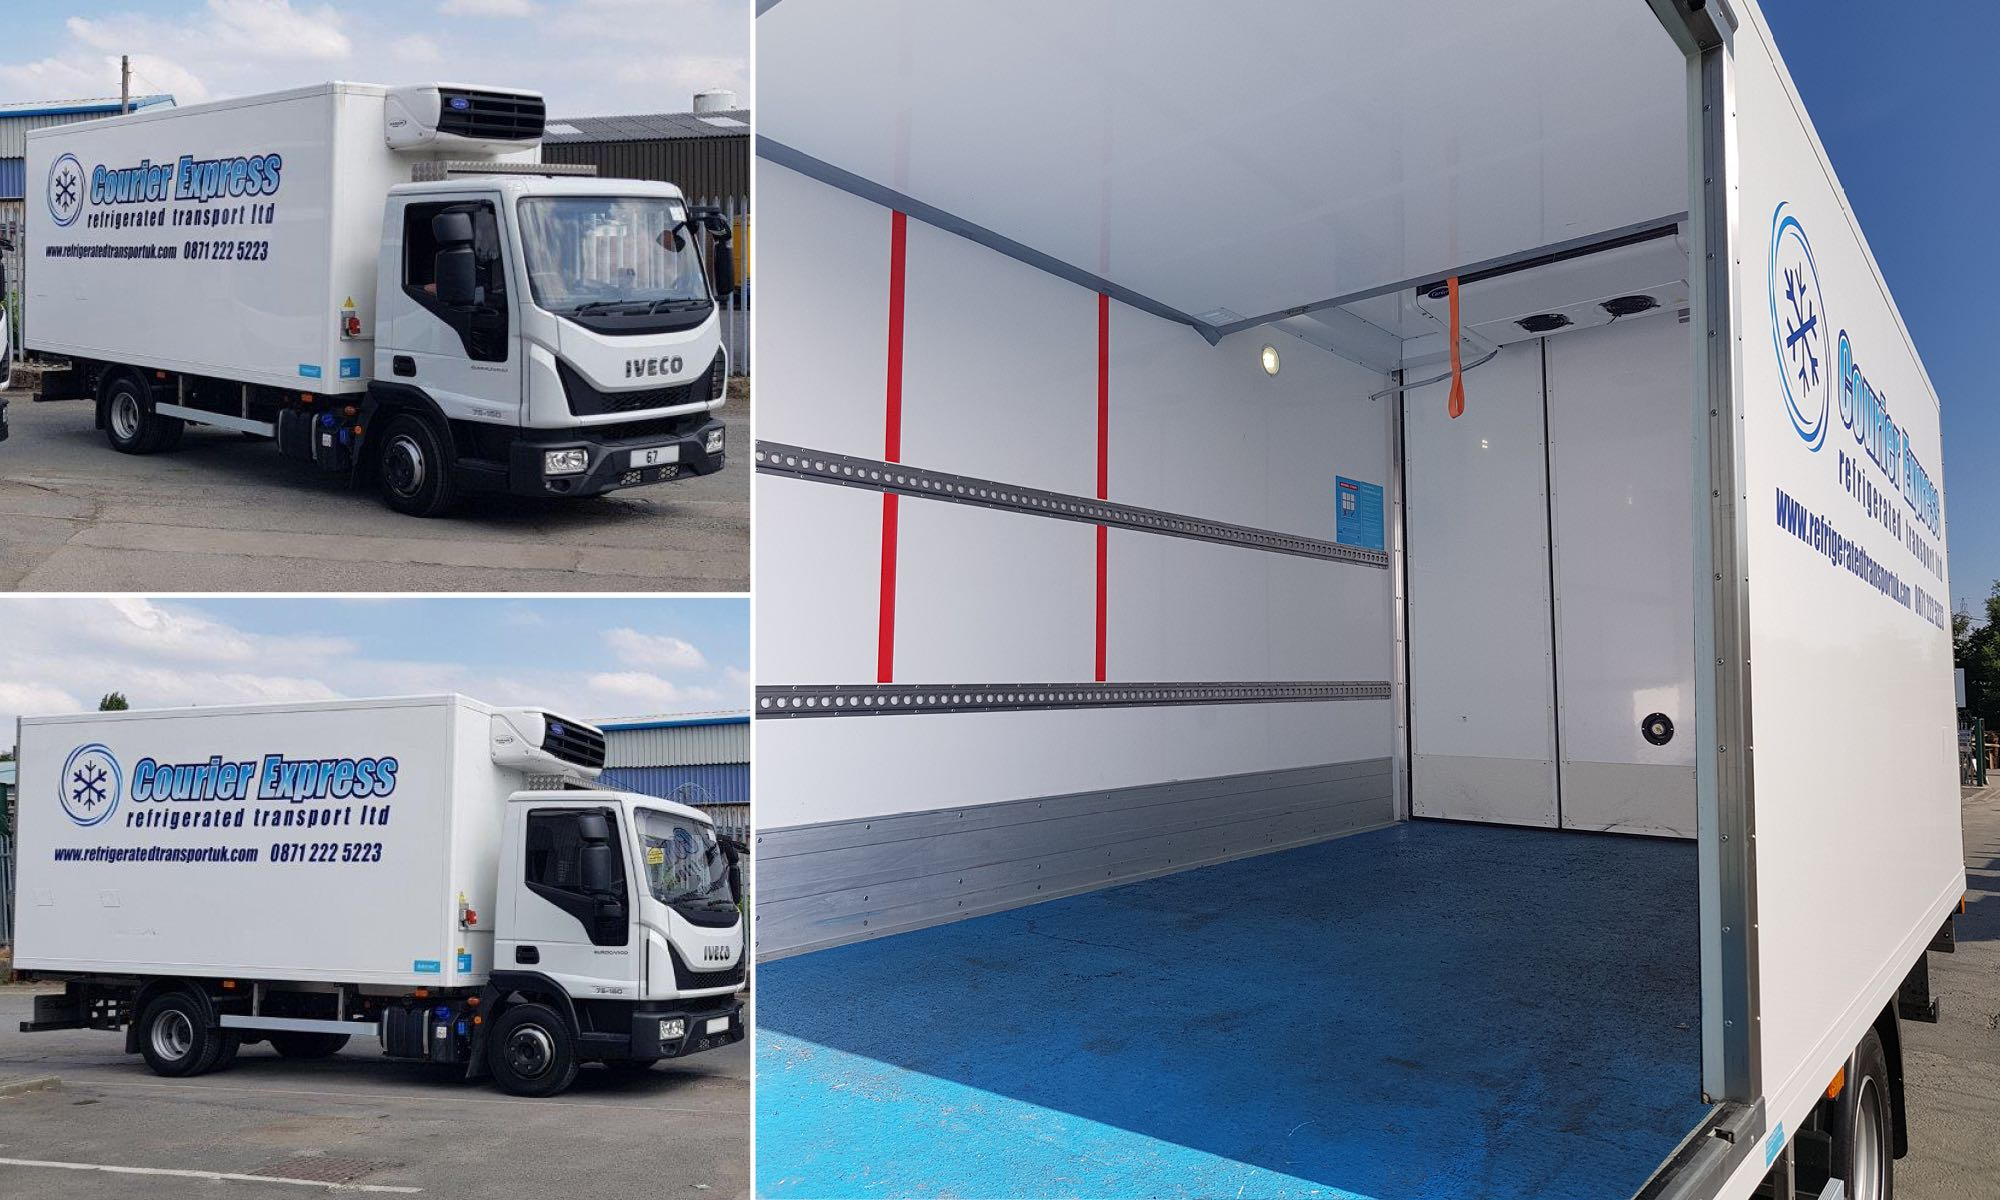 New refrigerated transport truck